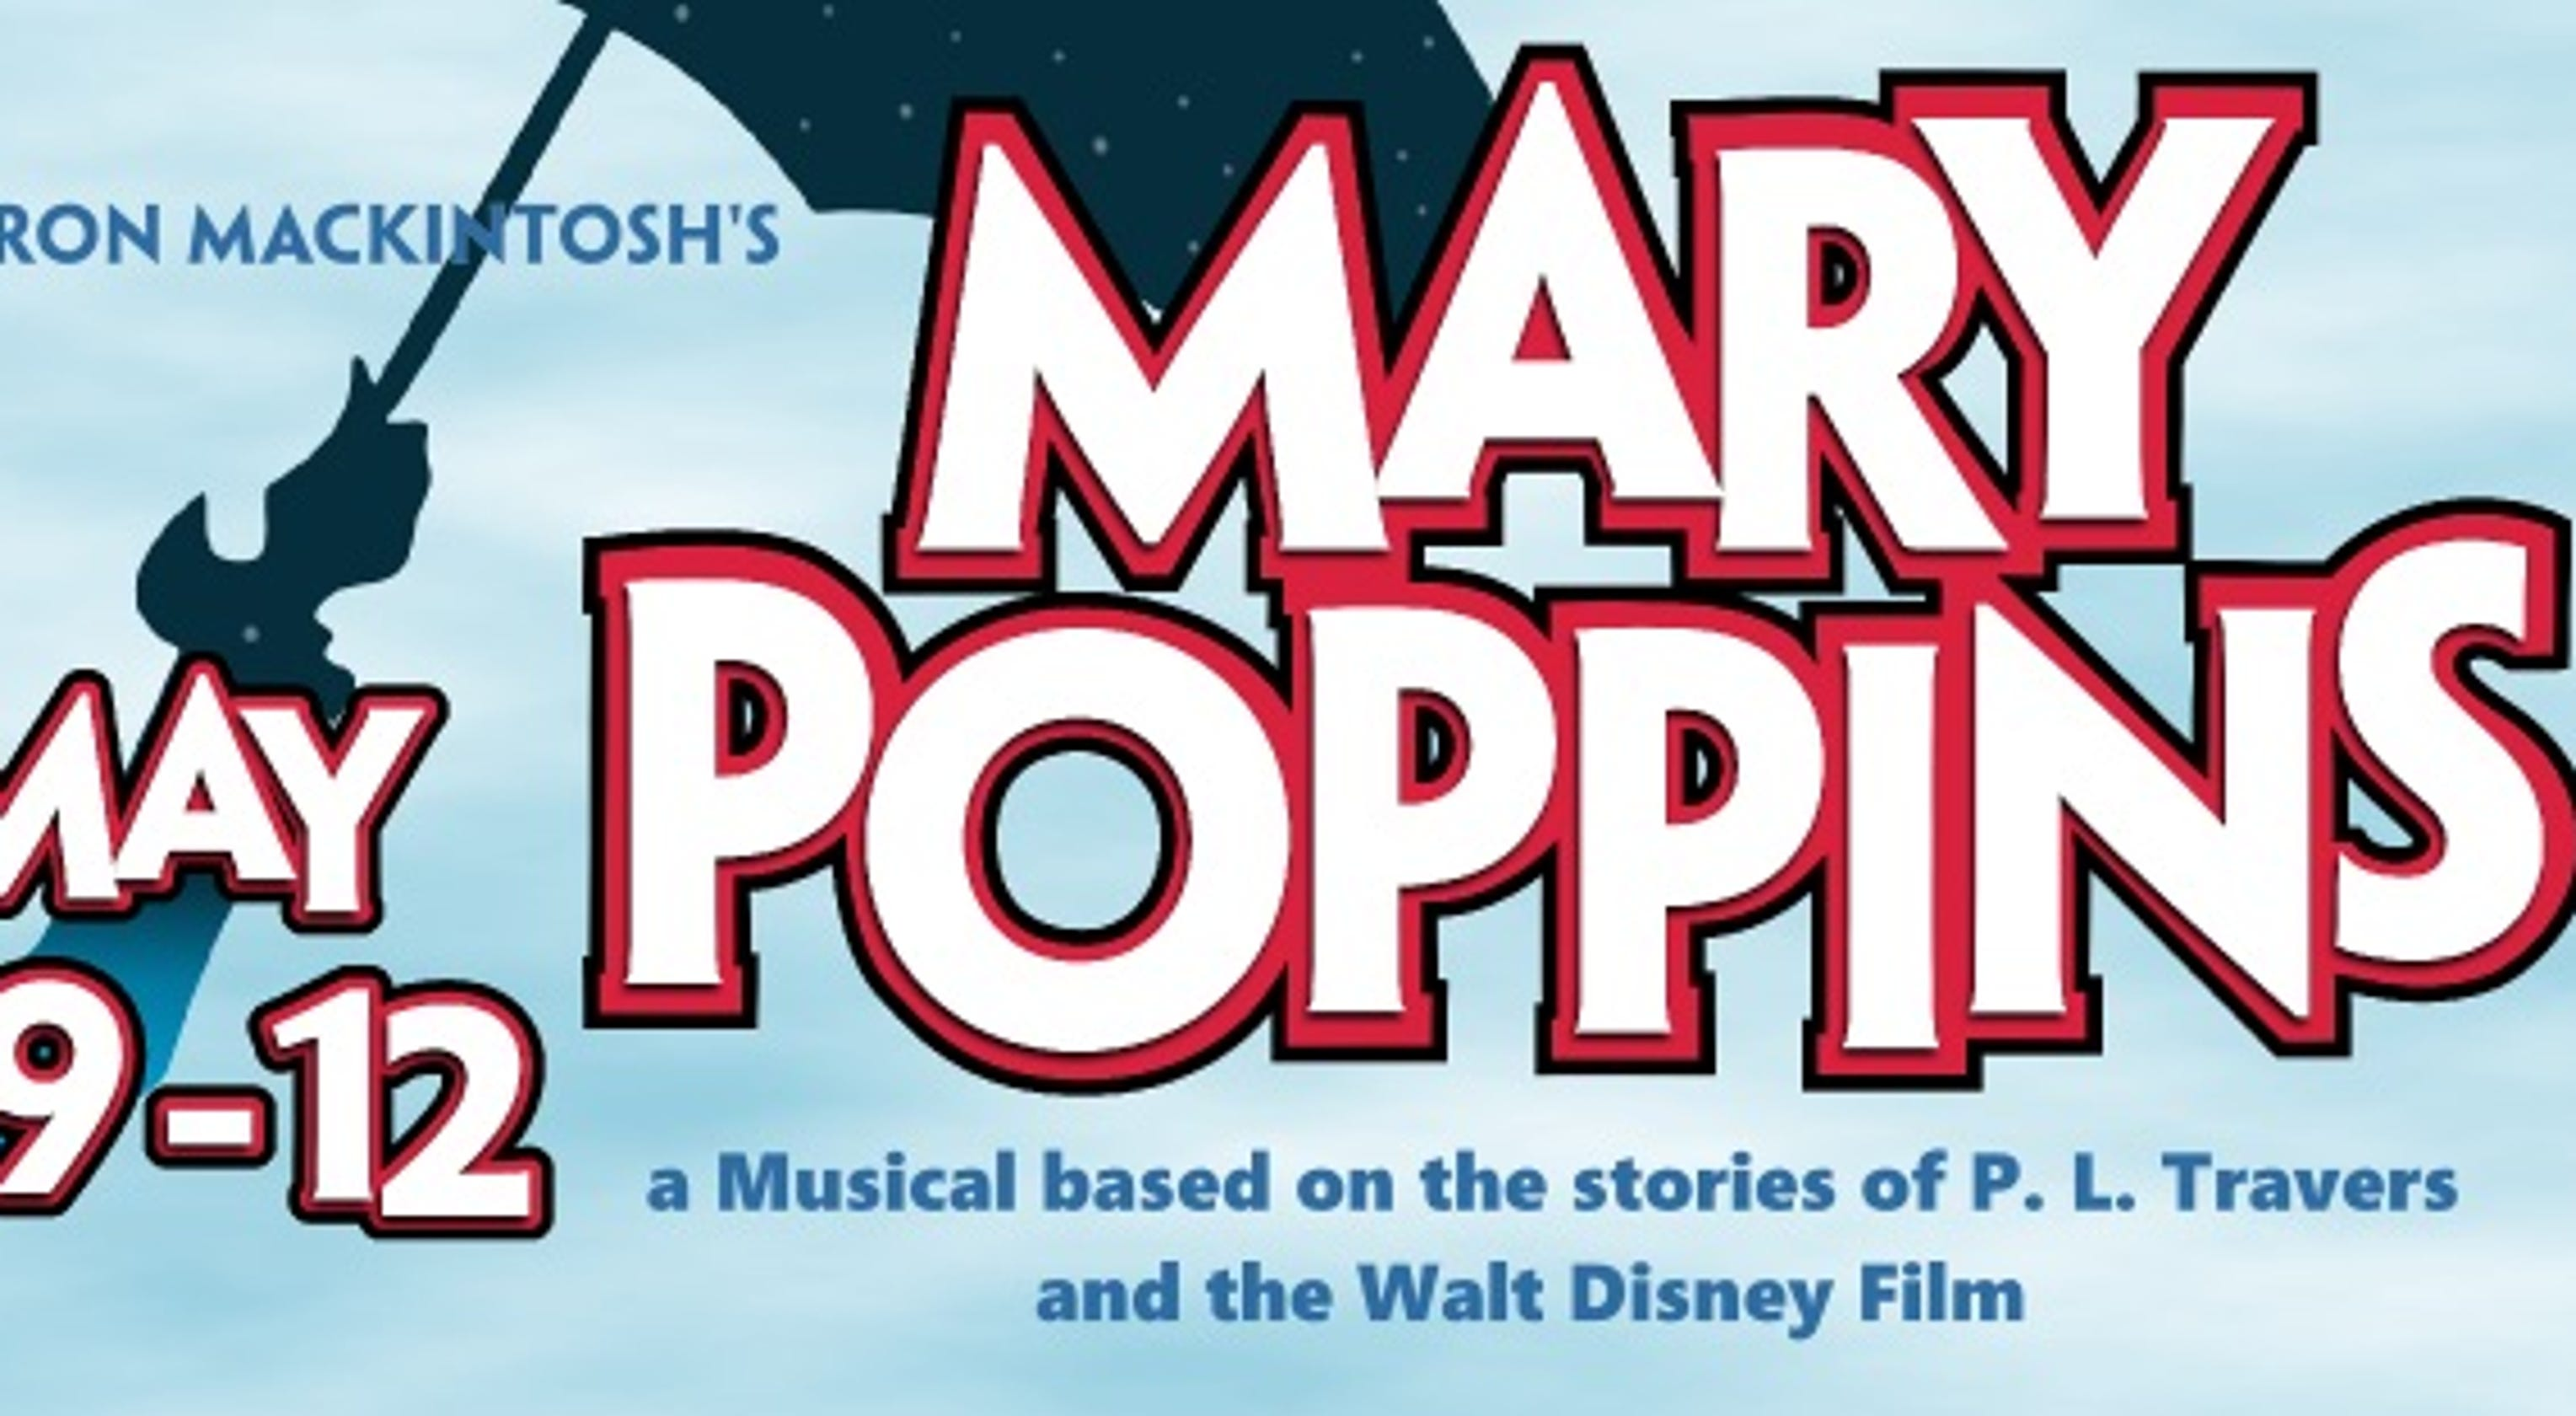 Manitowoc Masquers theater to hold open auditions for 'Mary Poppins'